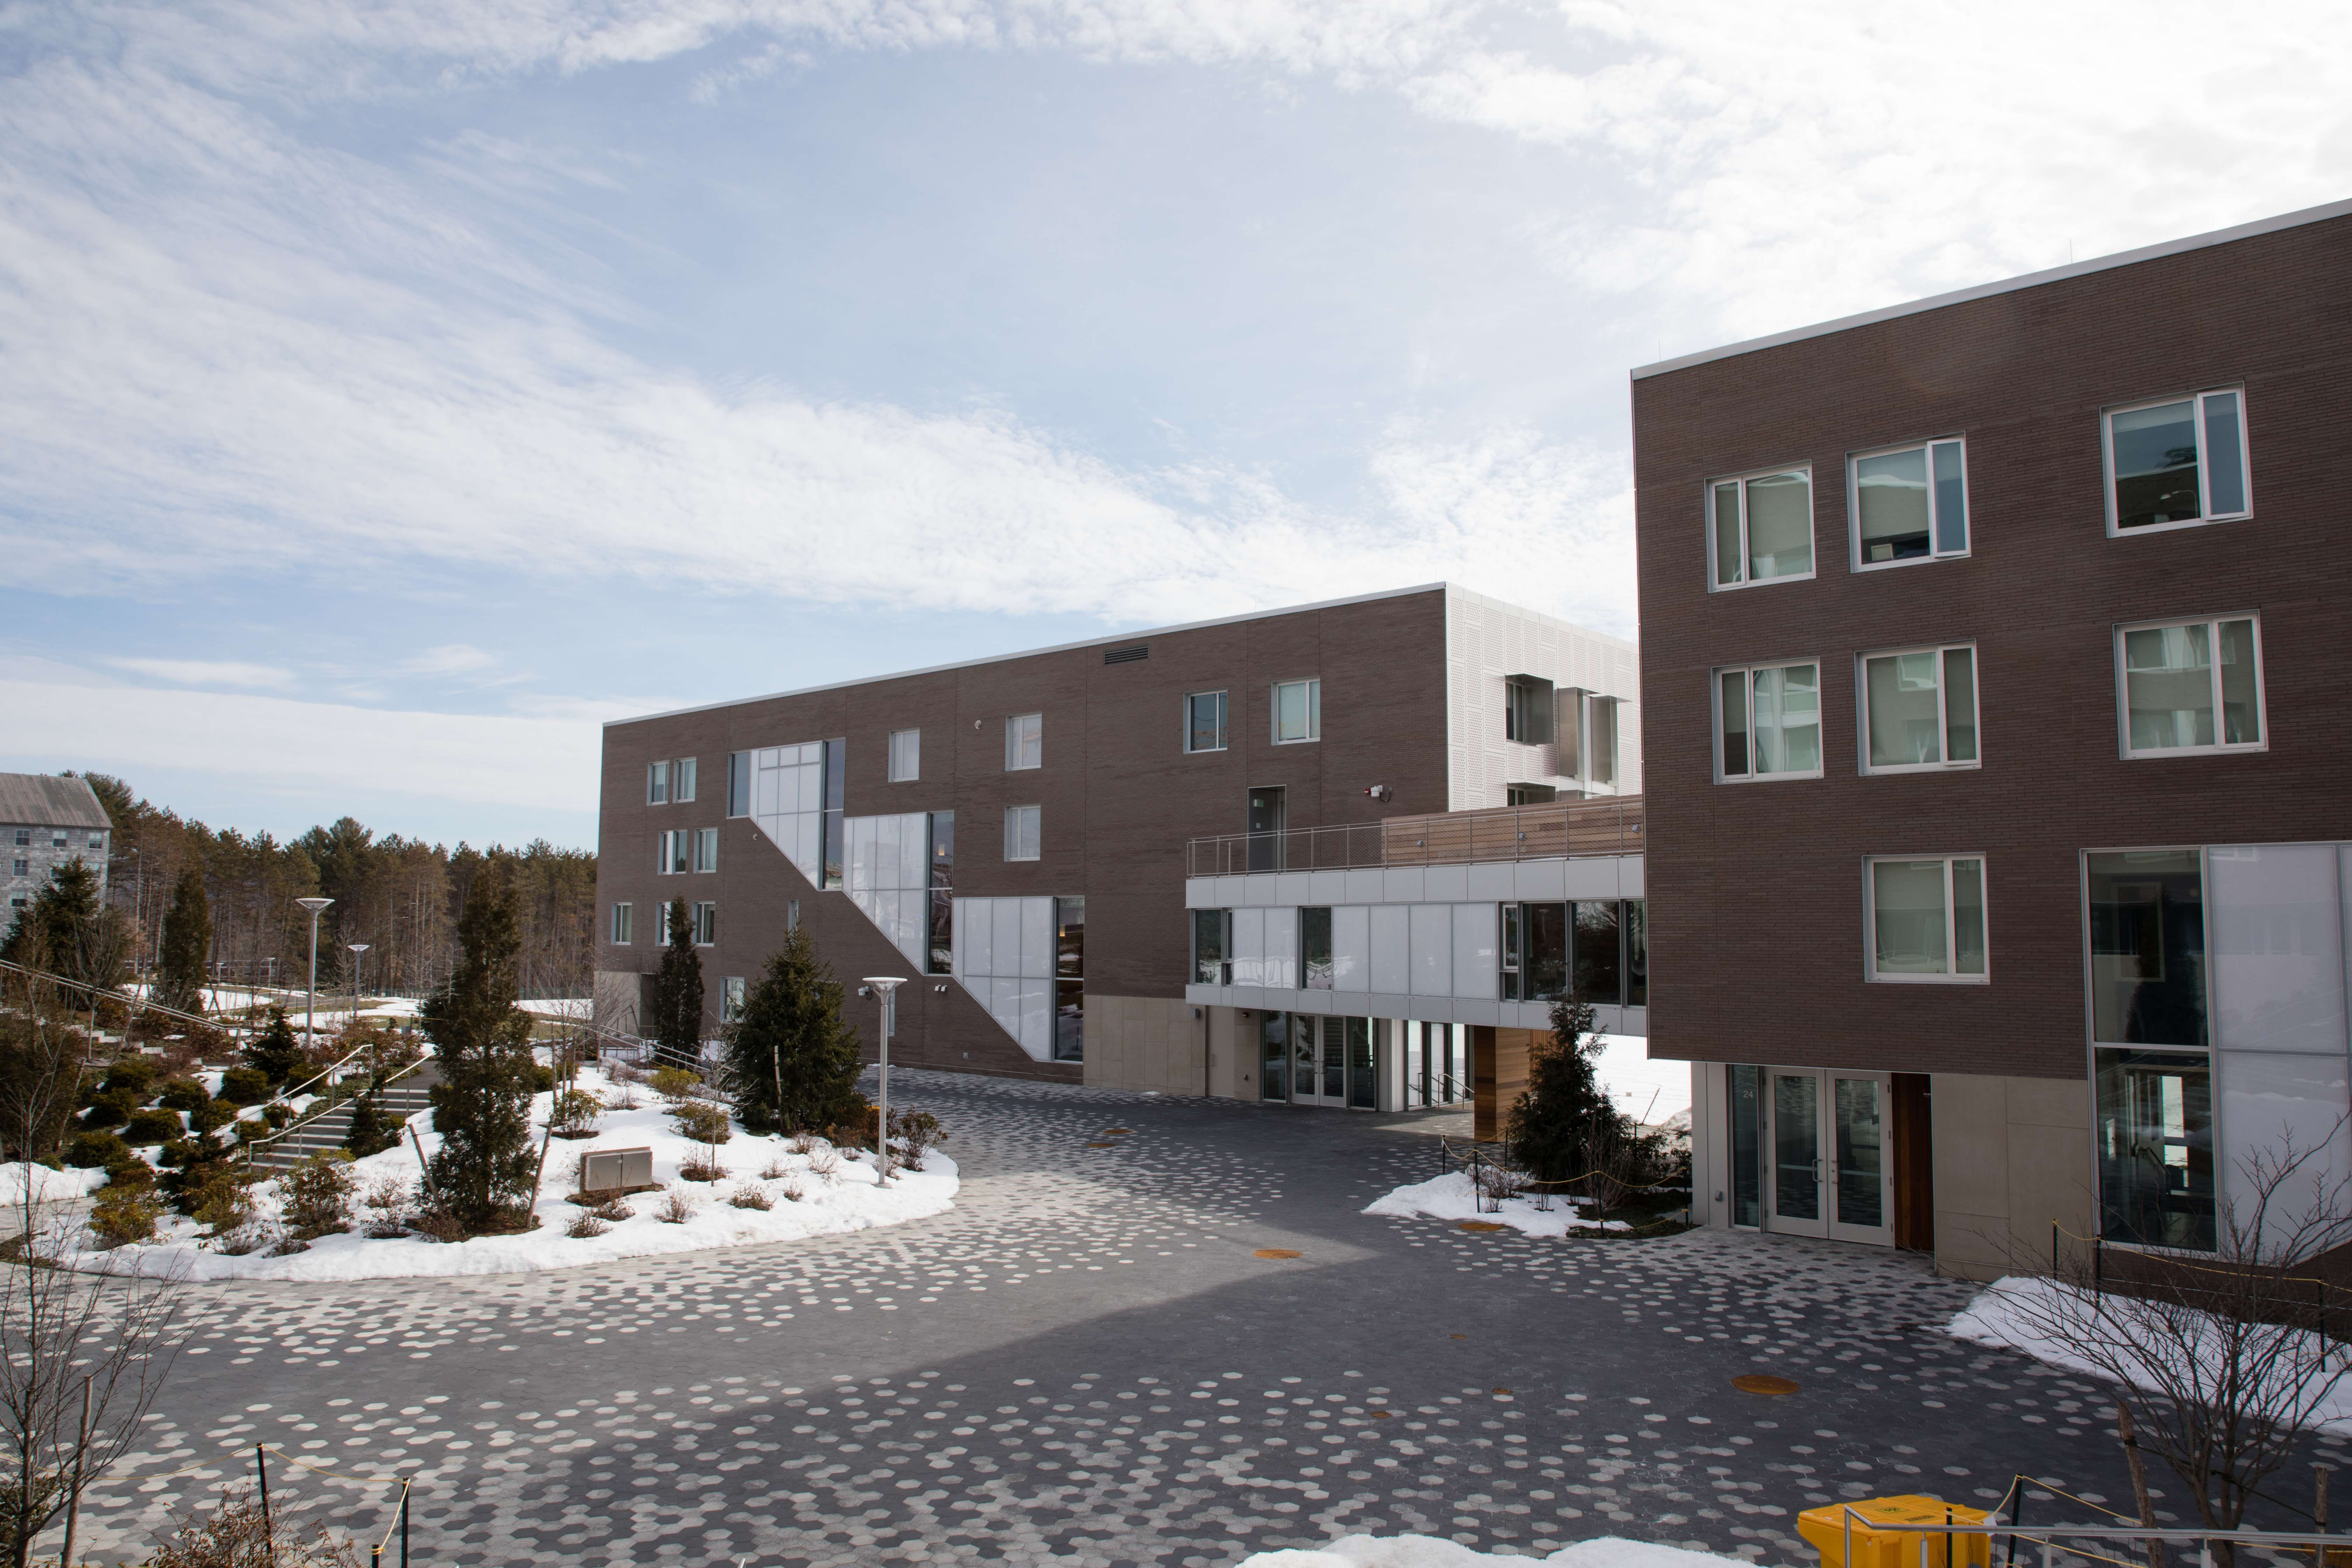 Residential Life Announces Housing Changes The Amherst